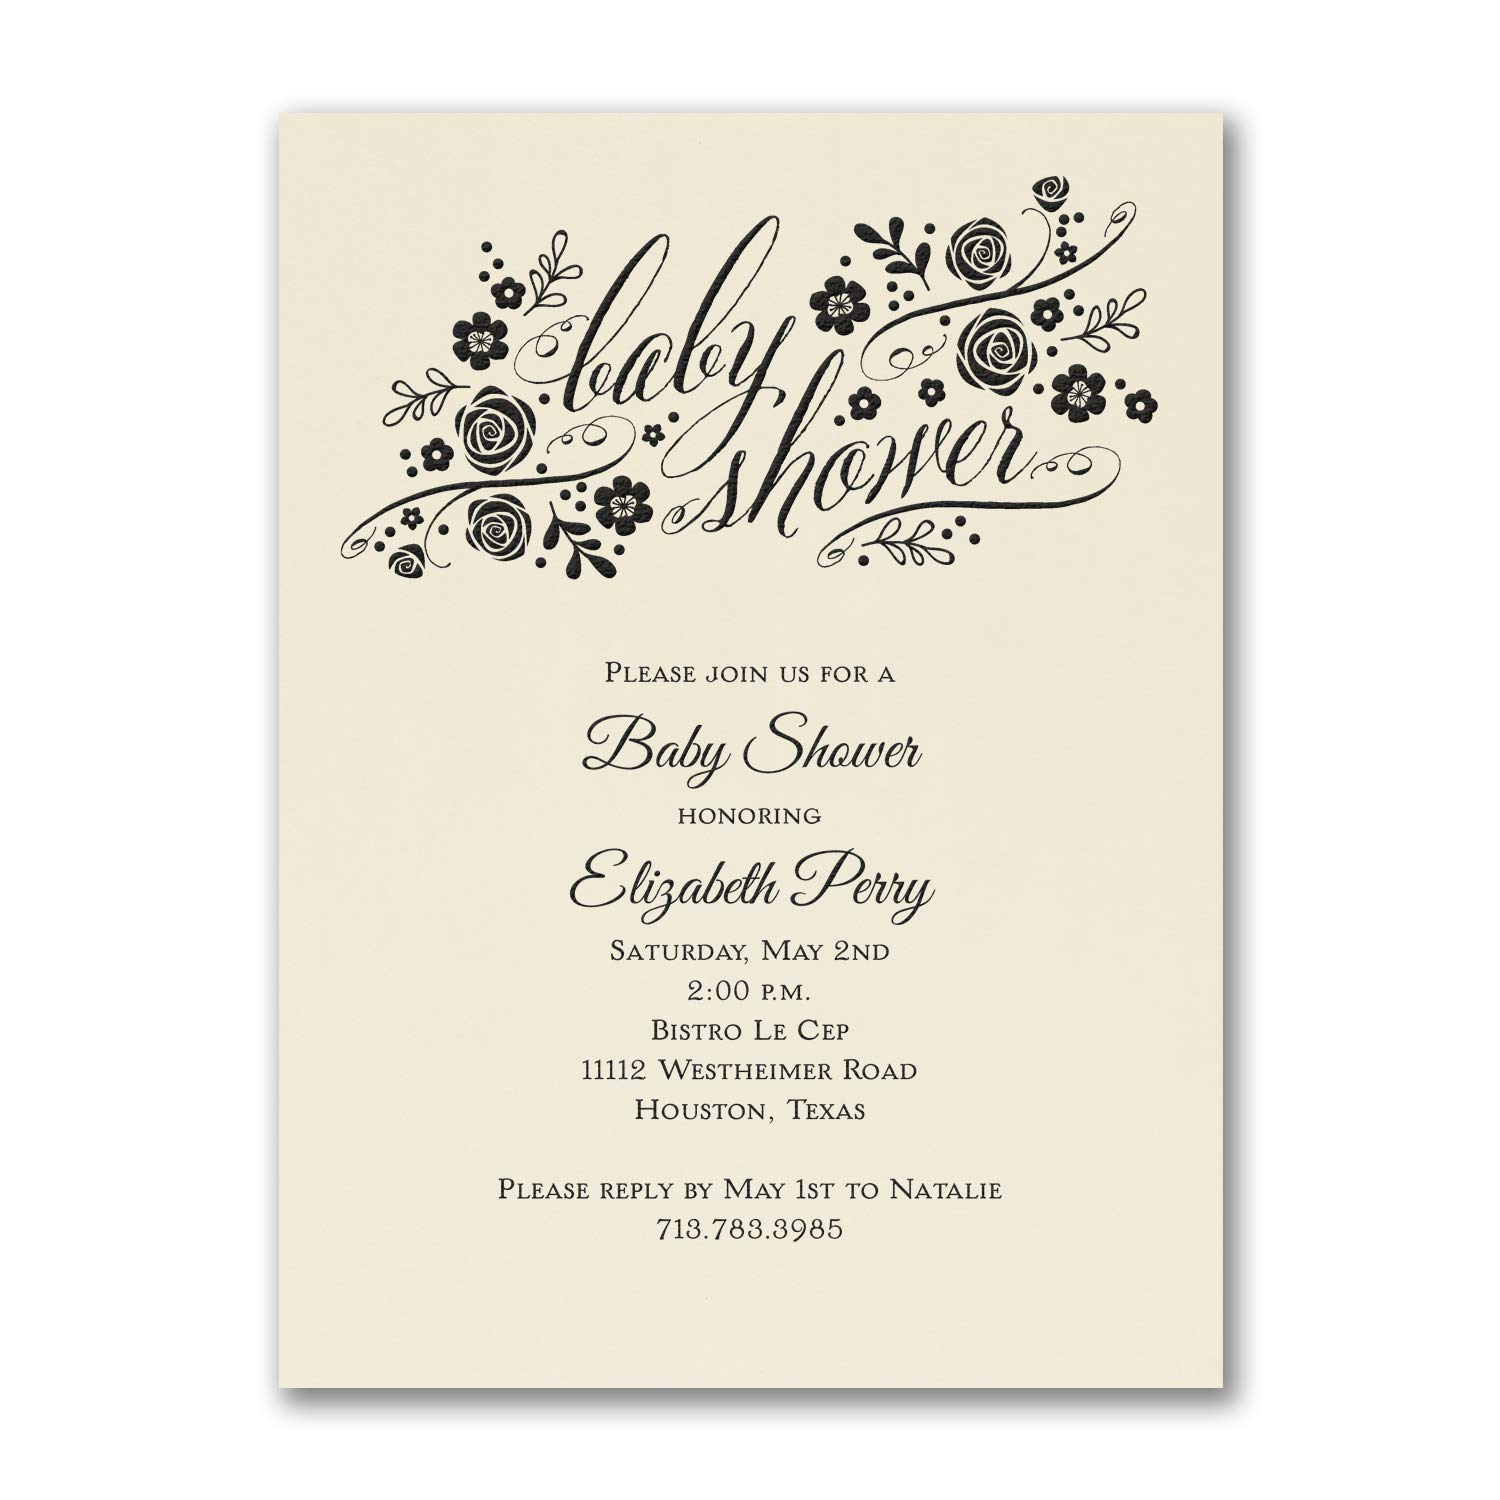 1000pk Little Rosebuds - Baby Shower Invitation - Ecru-Baby Shower Invitations